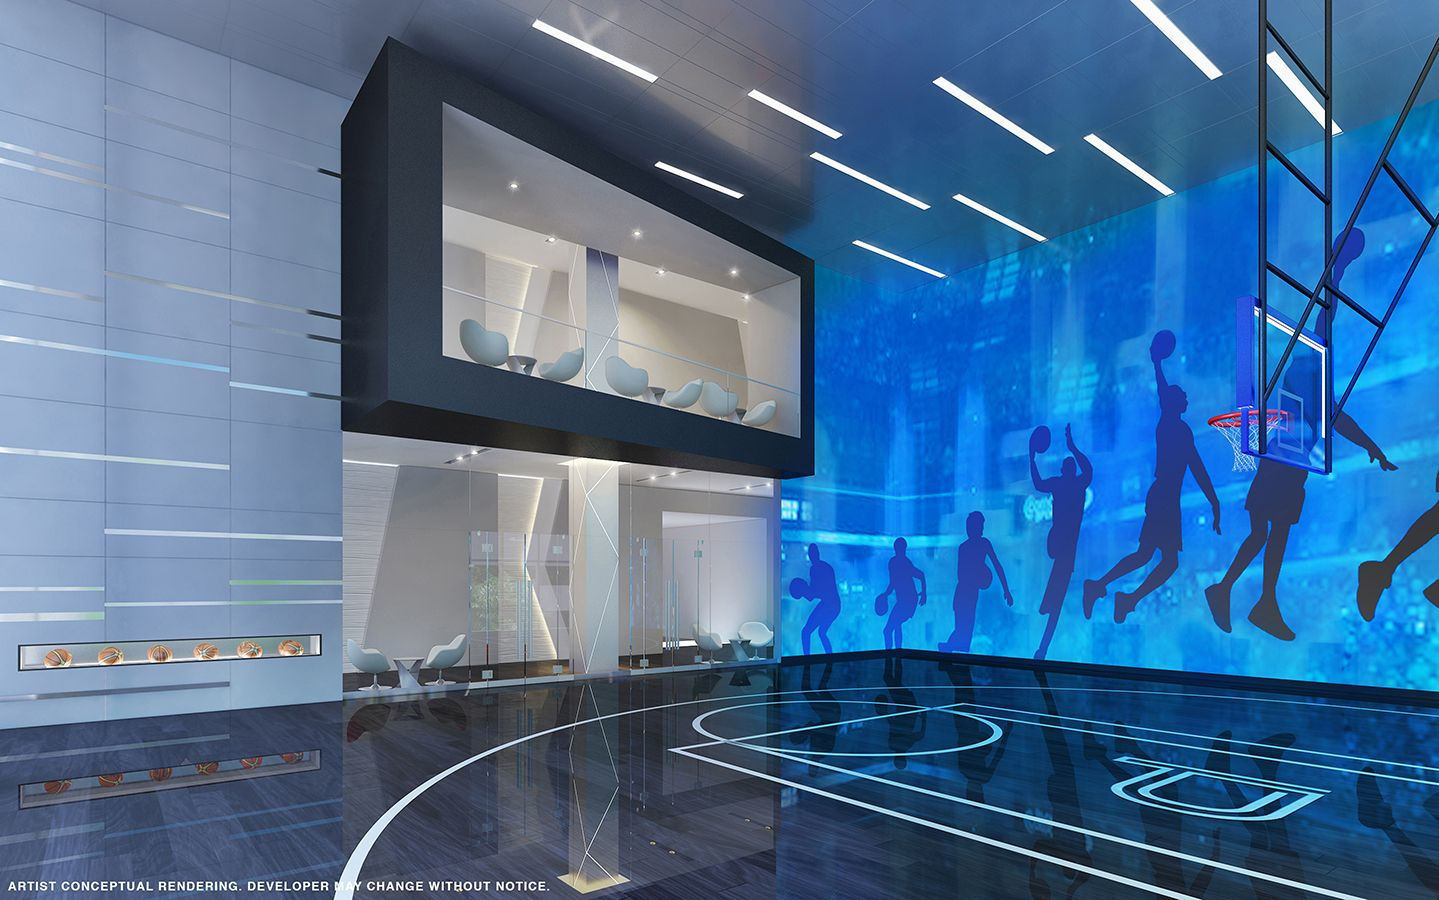 Office Building Basketball Court Paramount Miami Worldcenter Unveils Rooftop Observatory Deck Indoor Basketball Court Home Basketball Court Basketball Room